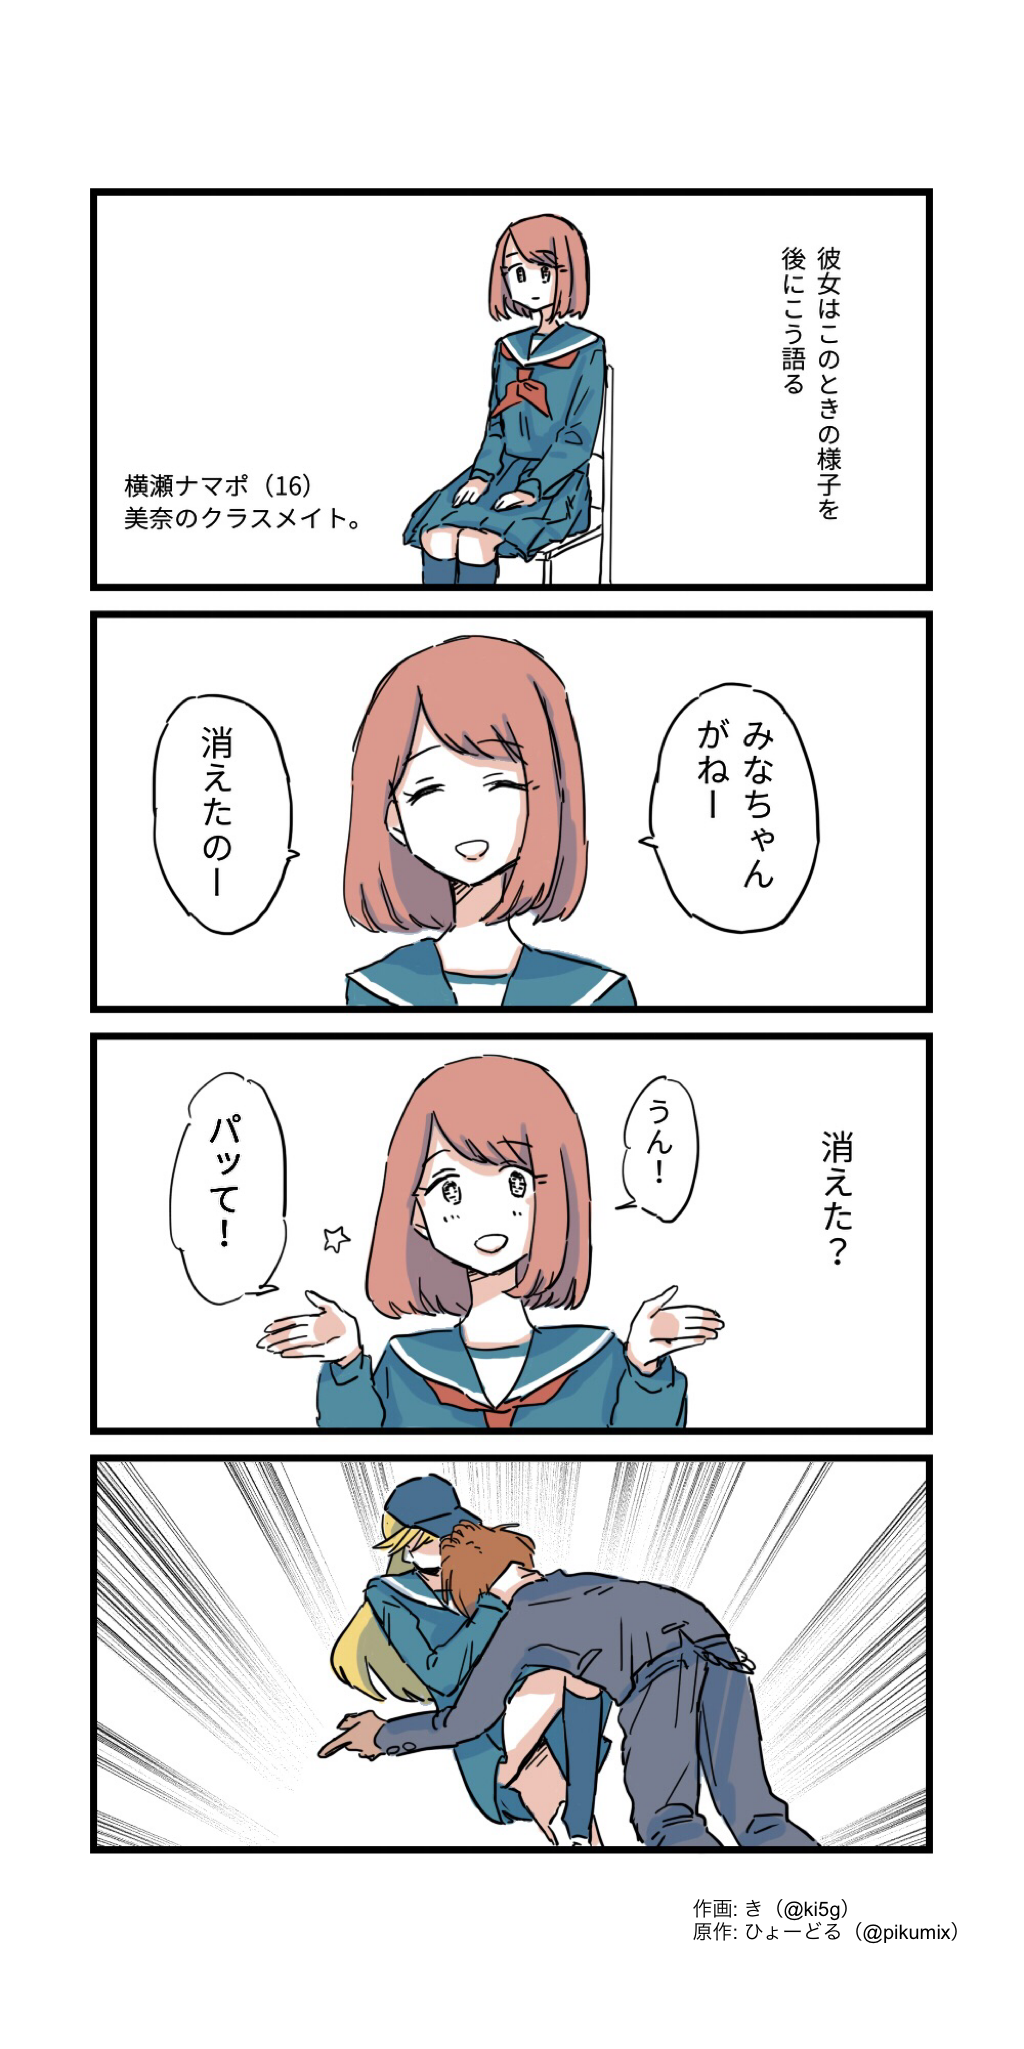 20190609114817b18.png